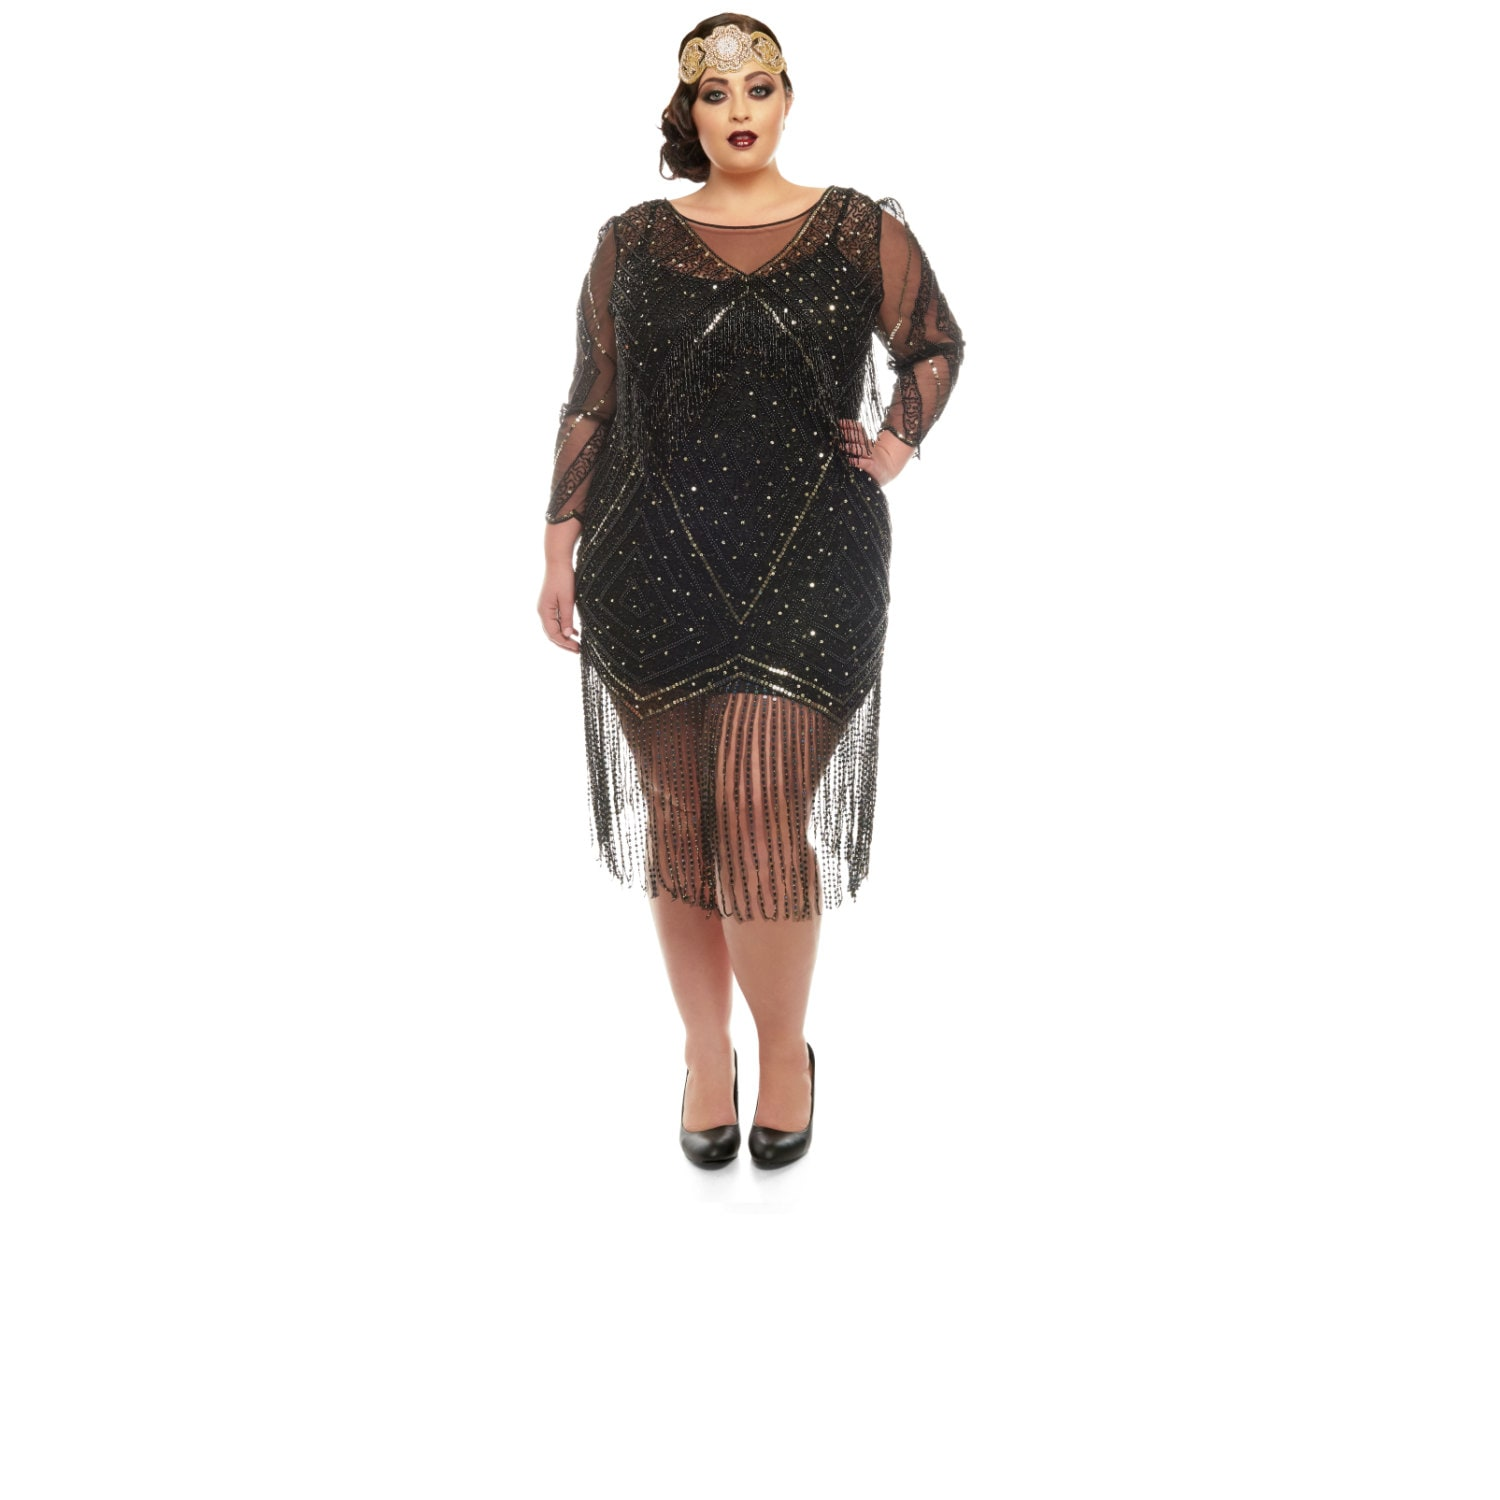 Plus Size Betty Black Fringe Dress With Sleeves Slip Included